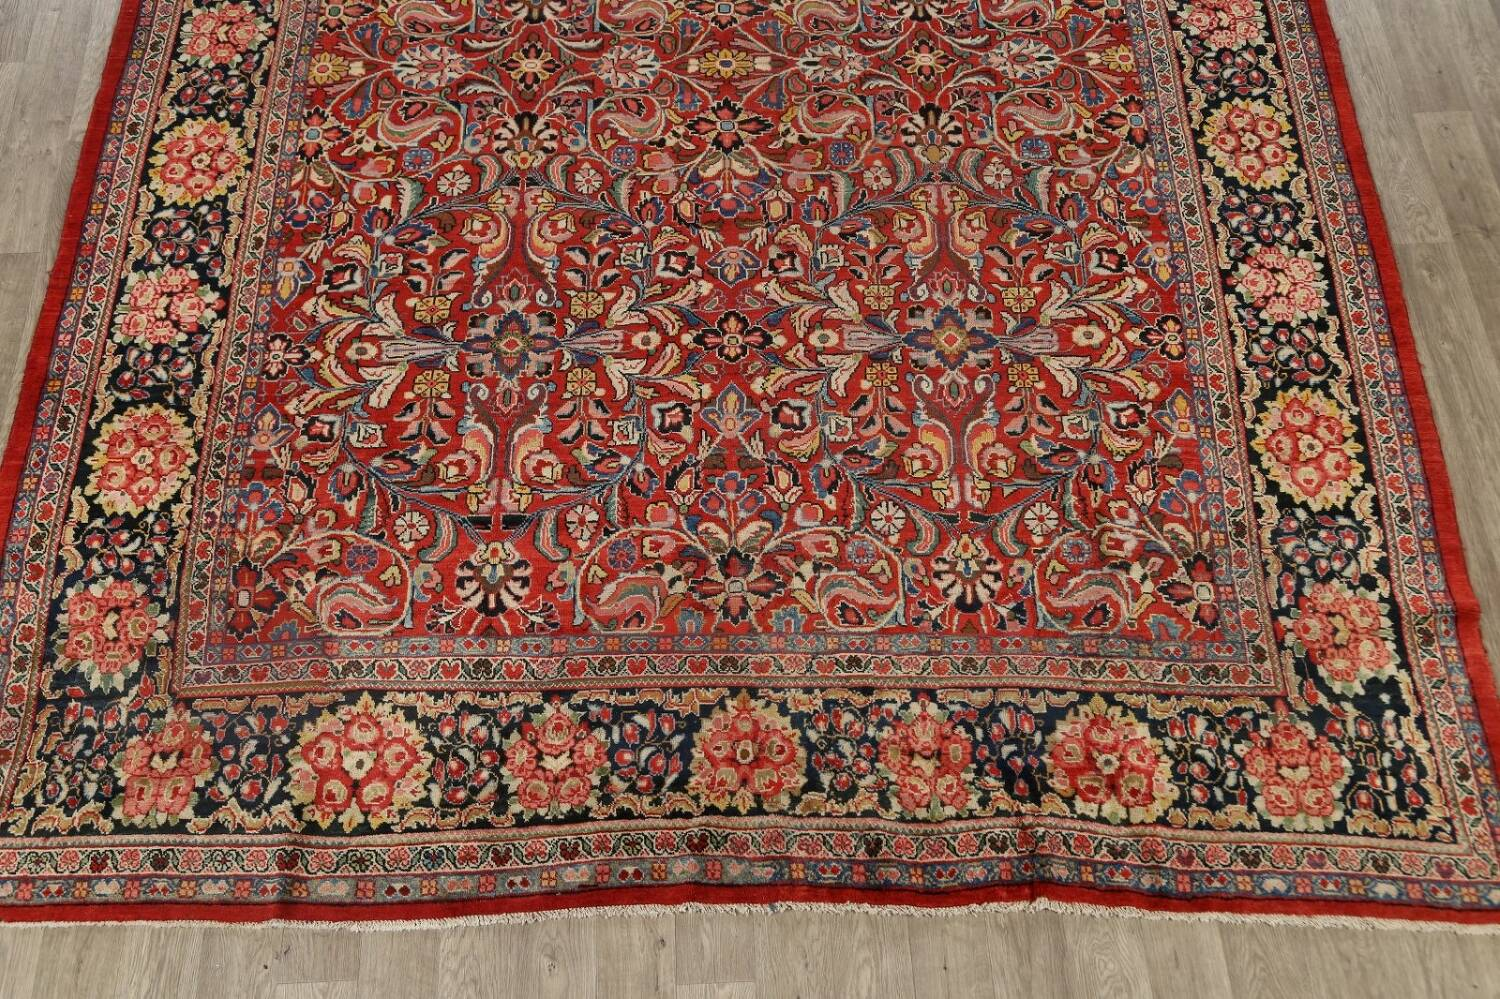 Antique Vegetable Dye Sultanabad Persian Area Rug 10x14 image 8